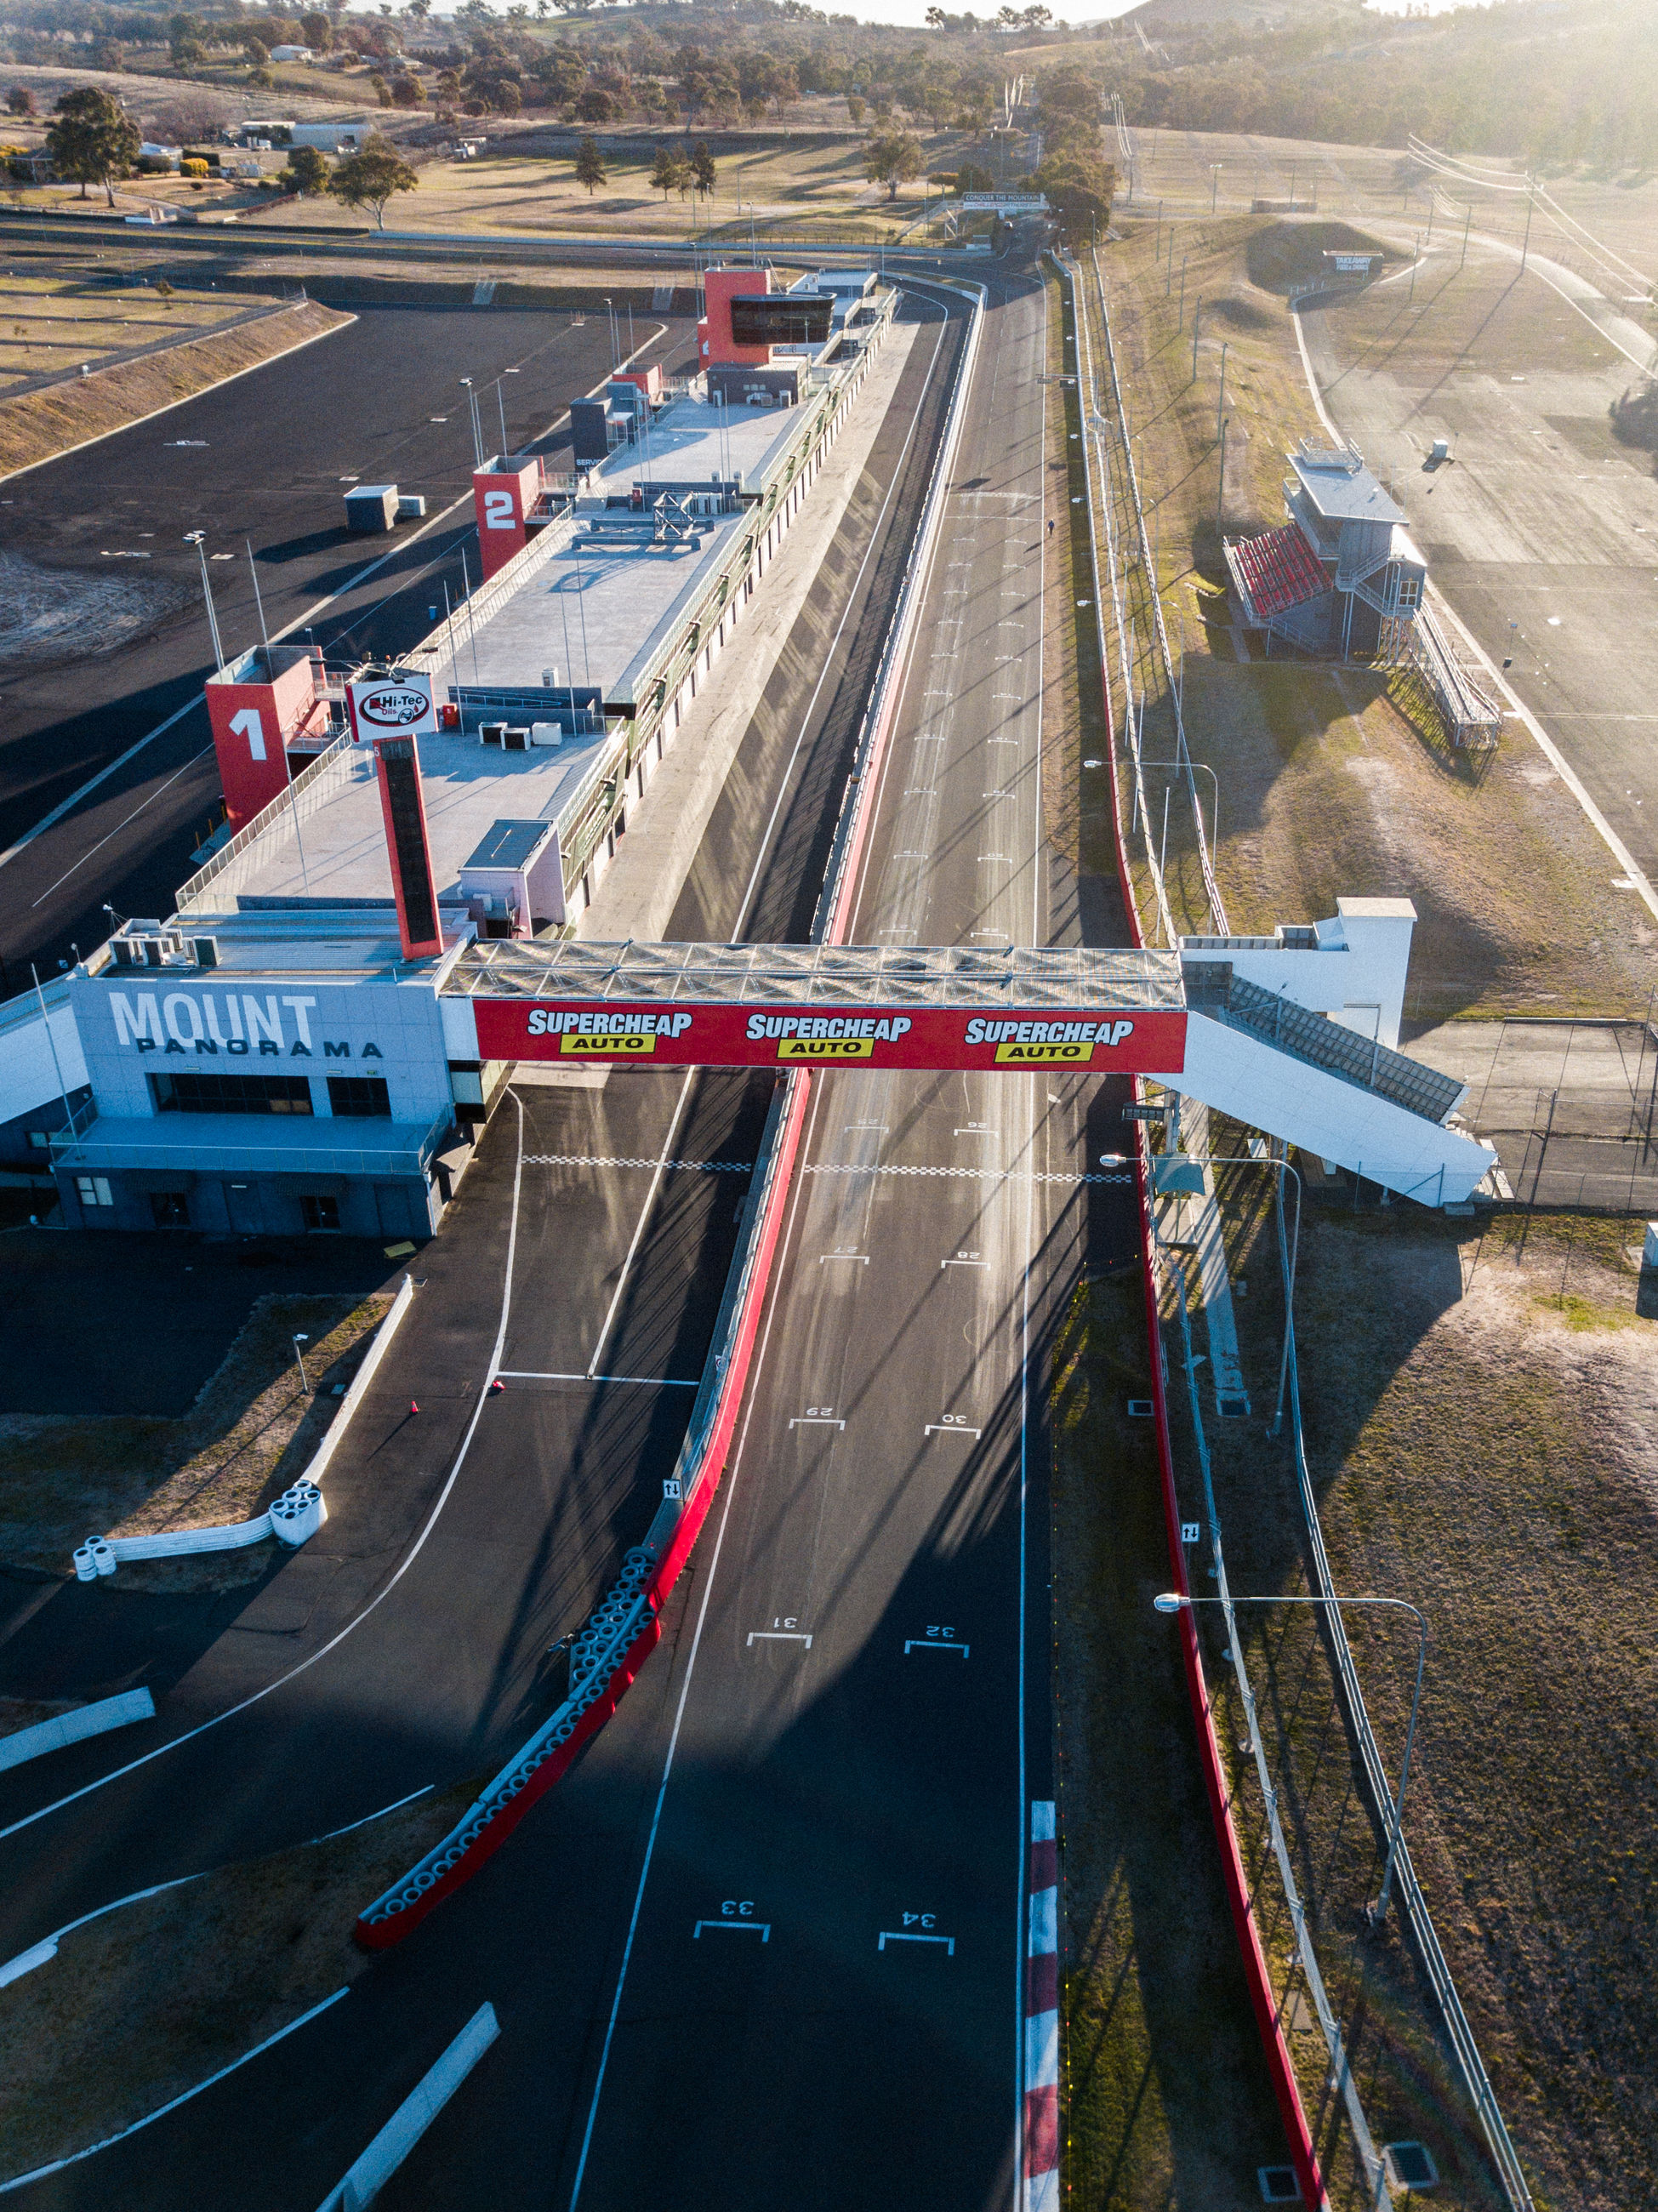 transportation, high angle view, mode of transportation, day, nature, road, outdoors, no people, industry, airport runway, architecture, water, public transportation, land vehicle, symbol, motion, sunlight, sign, city, travel